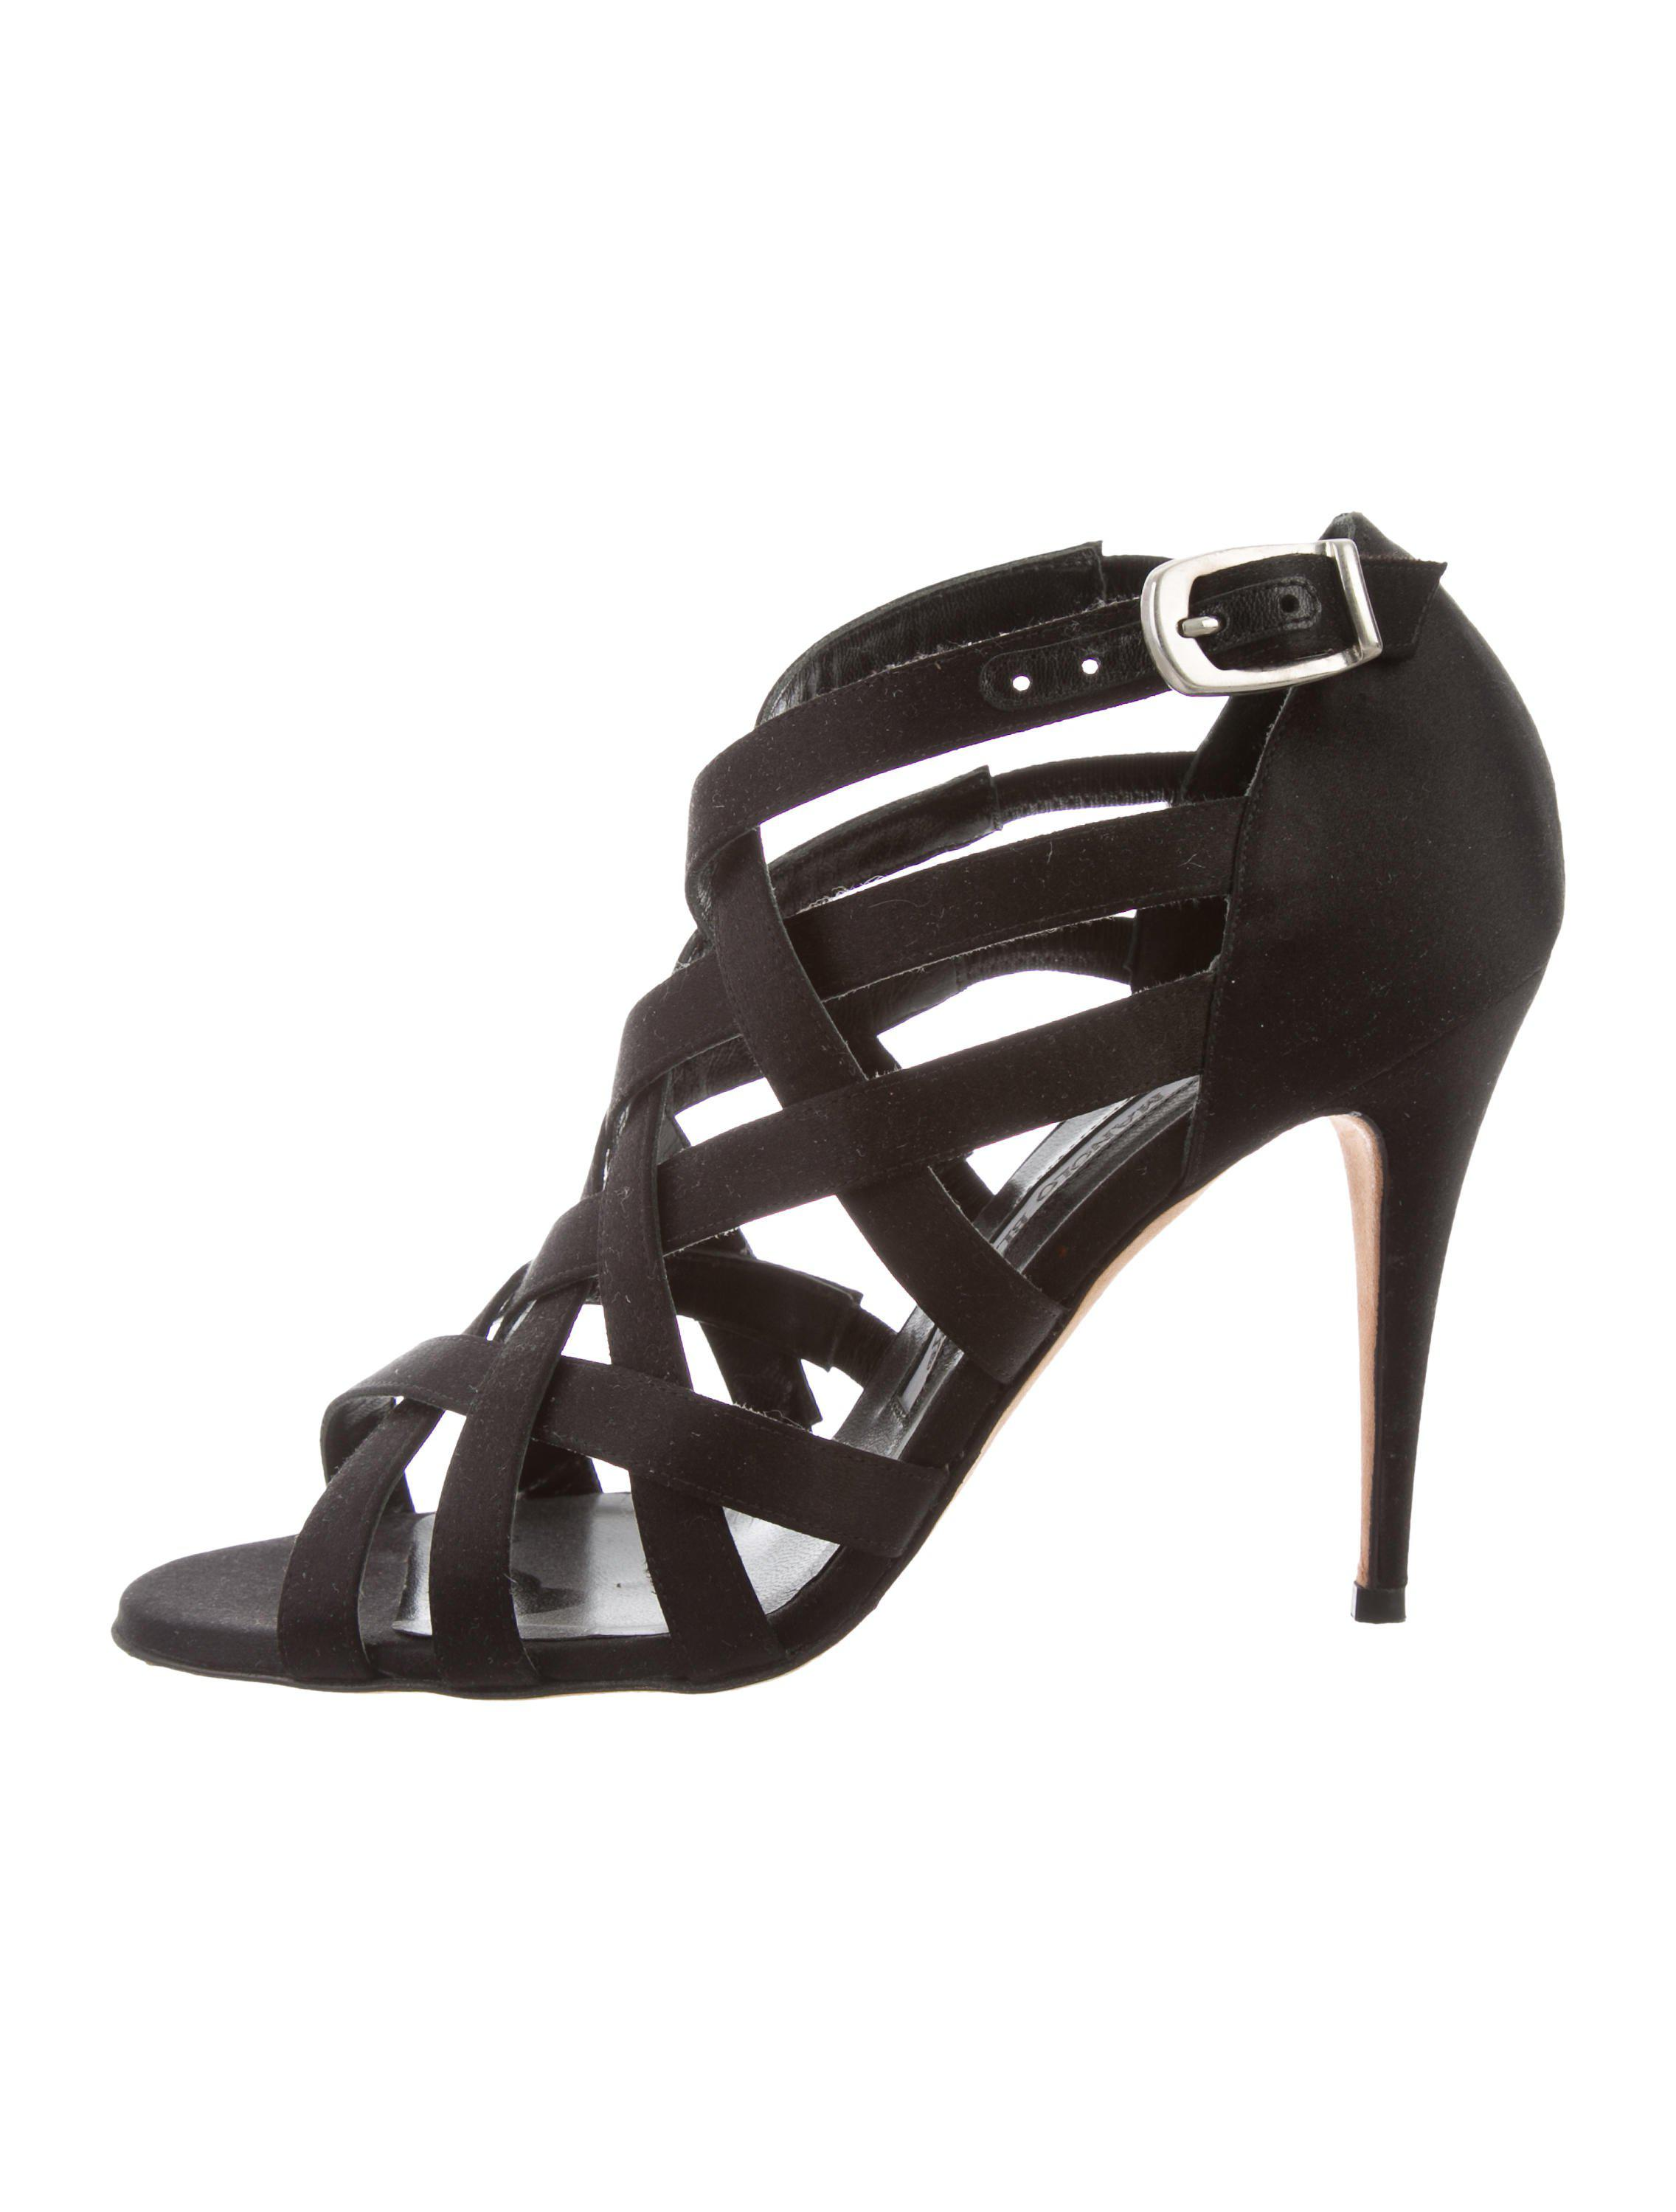 Manolo Blahnik Satin Caged Pumps authentic for sale choice cheap price discount best sale with paypal buy cheap geniue stockist NMiP7EBW